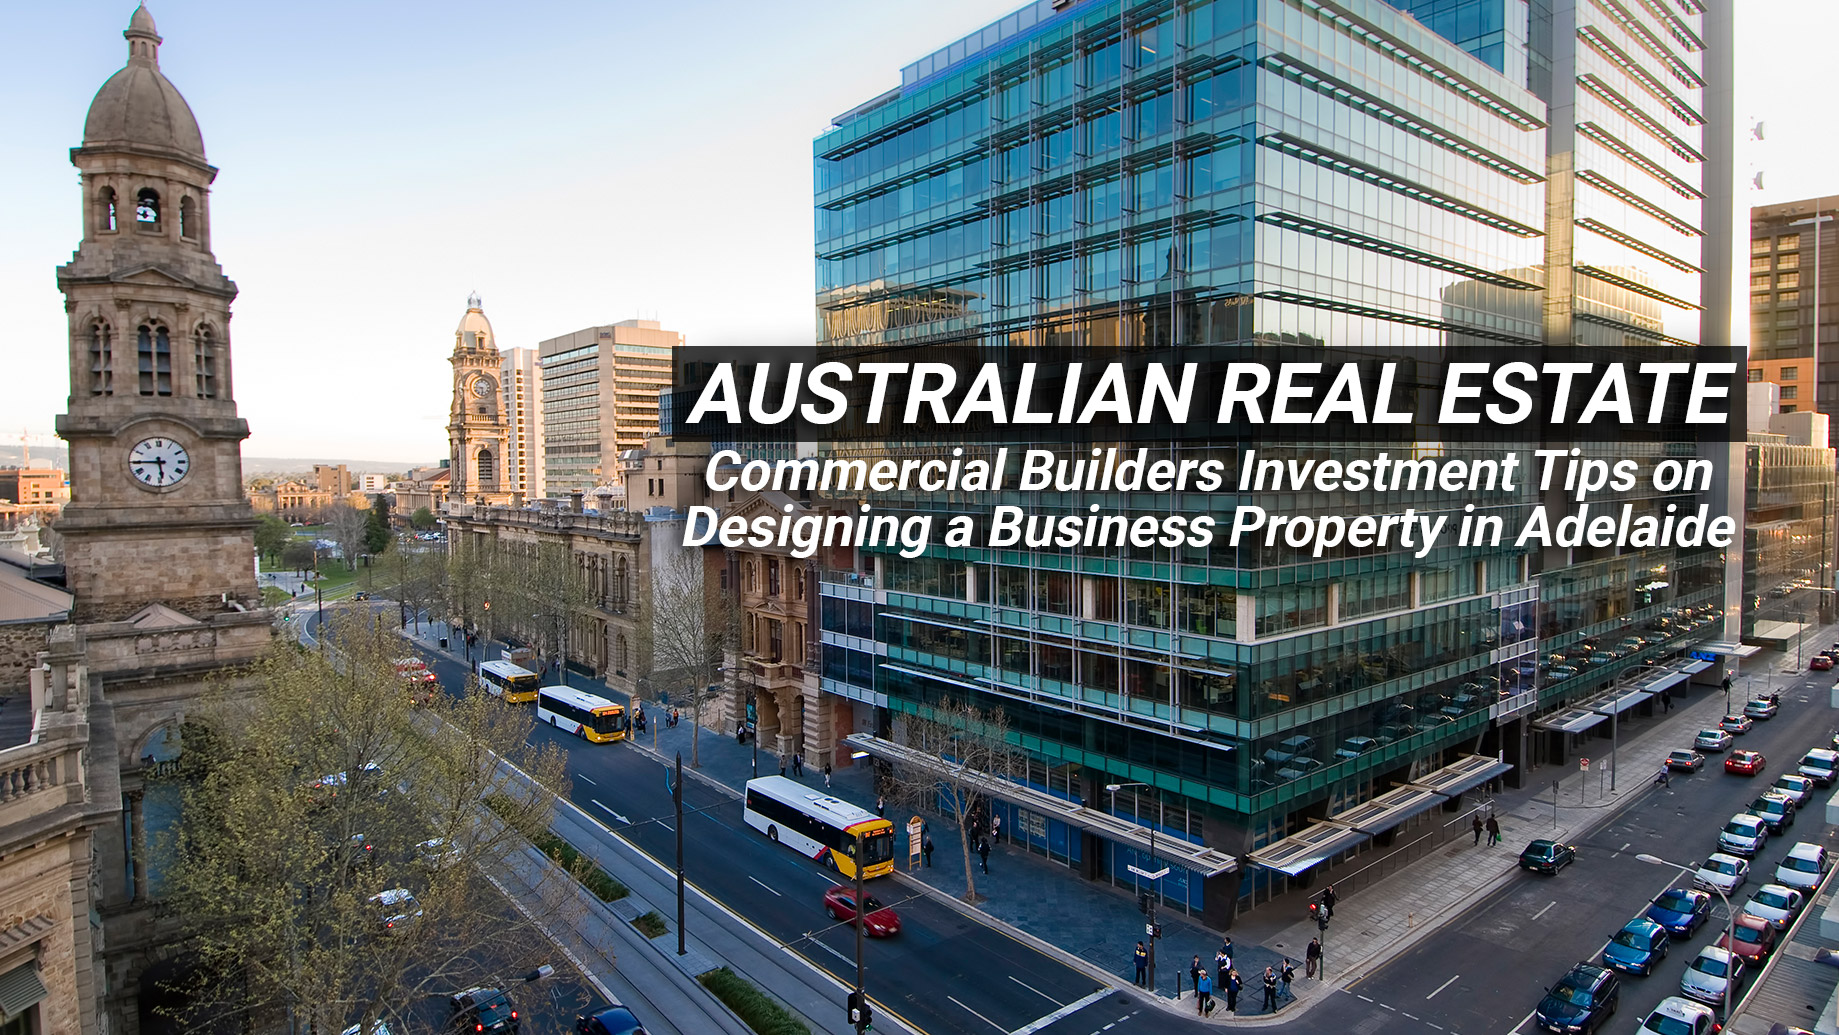 Australian Real Estate - Commercial Builders Investment Tips on Designing a Business Property in Adelaide